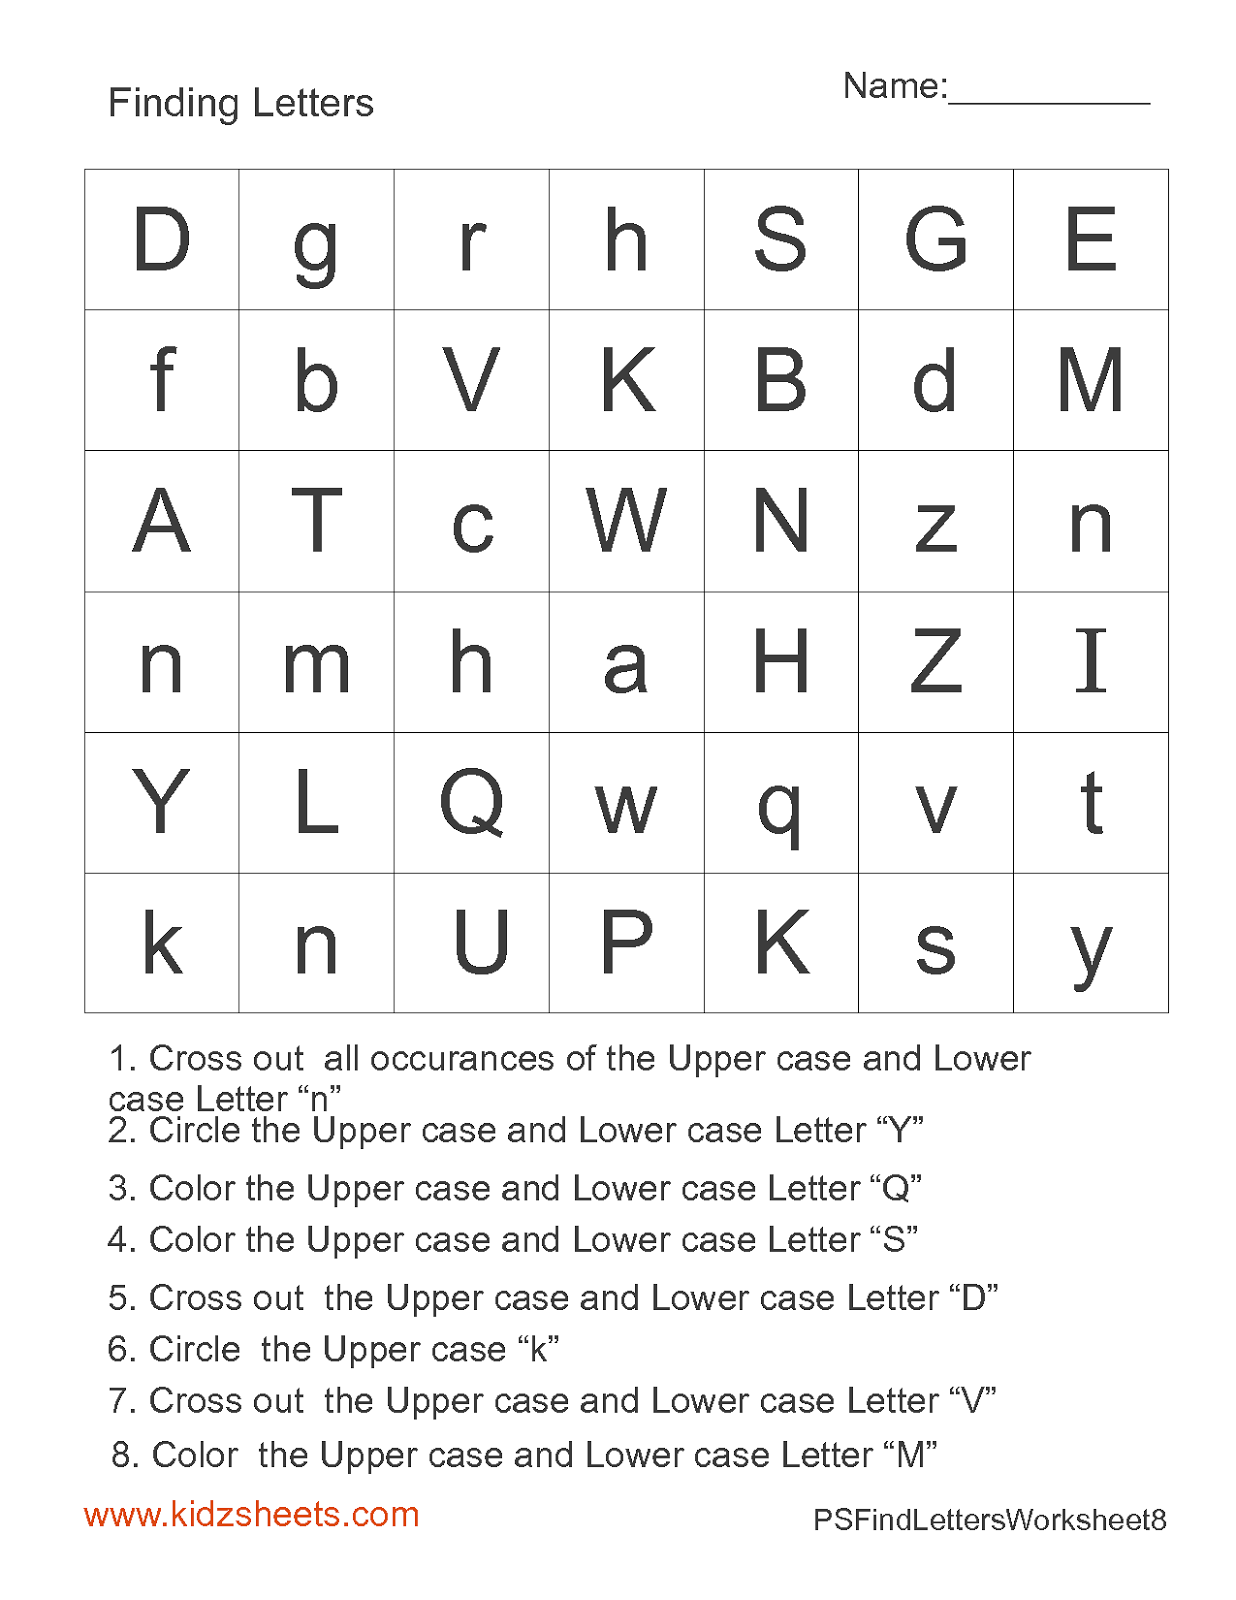 worksheet Letter S Worksheets For Preschool kidz worksheets preschool find letters worksheet8 letters